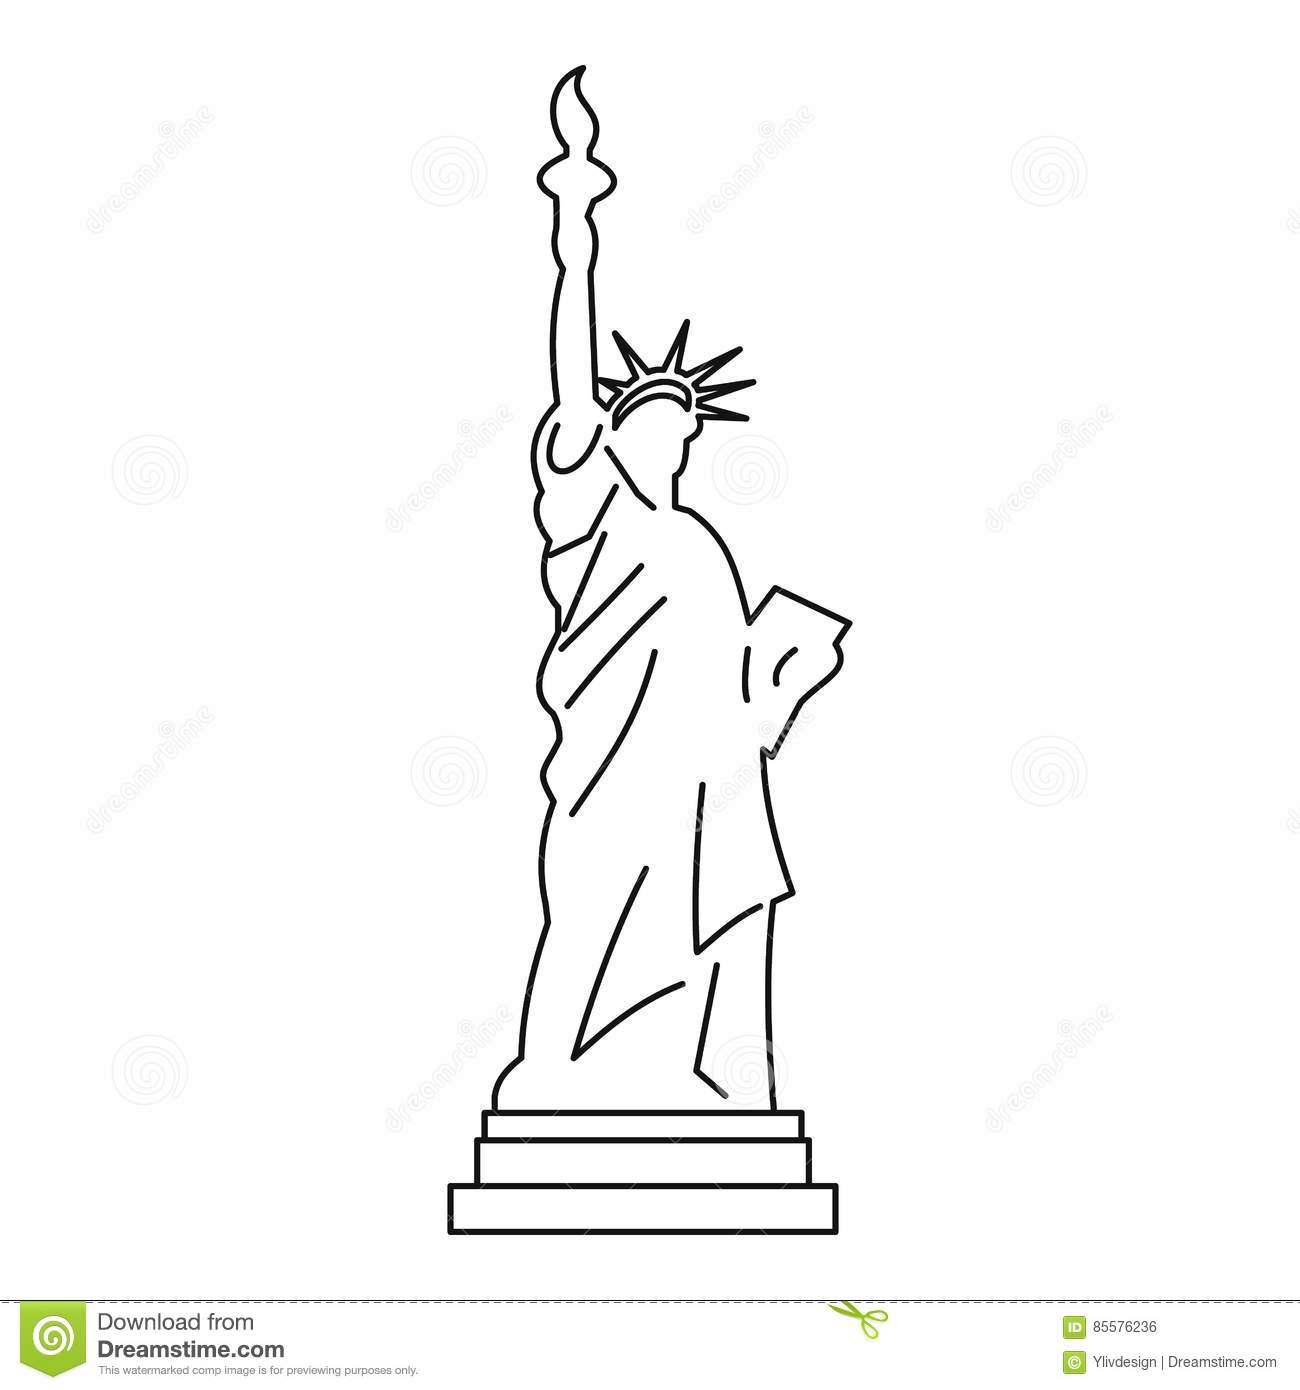 Statue of liberty icon outline style stock vector for Statue of liberty drawing template